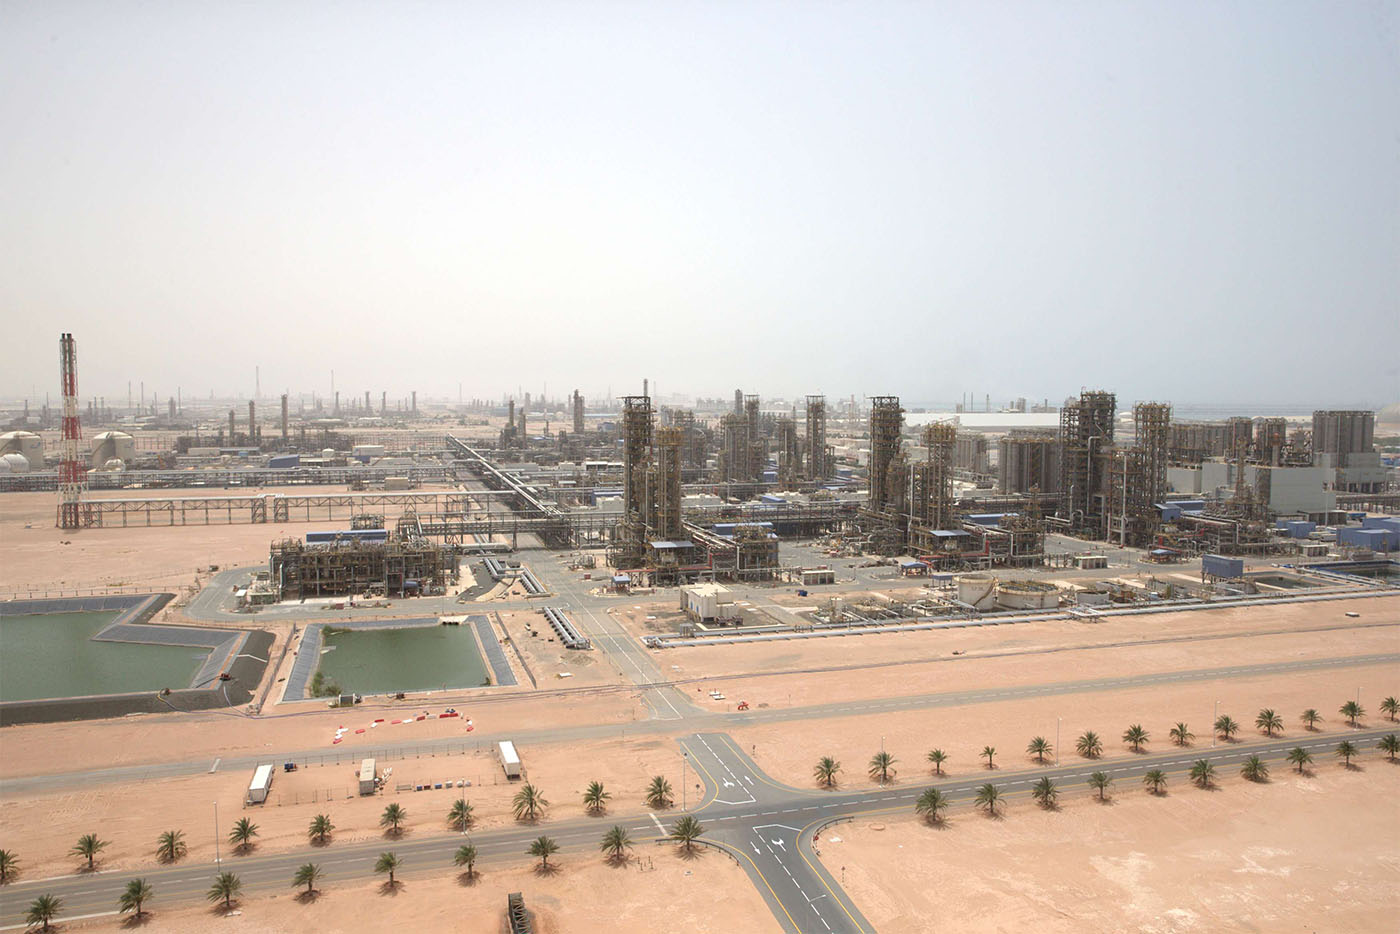 General view of the Borouge petrochemical facility at ADNOC's Ruwais Industrial Complex in Ruwais